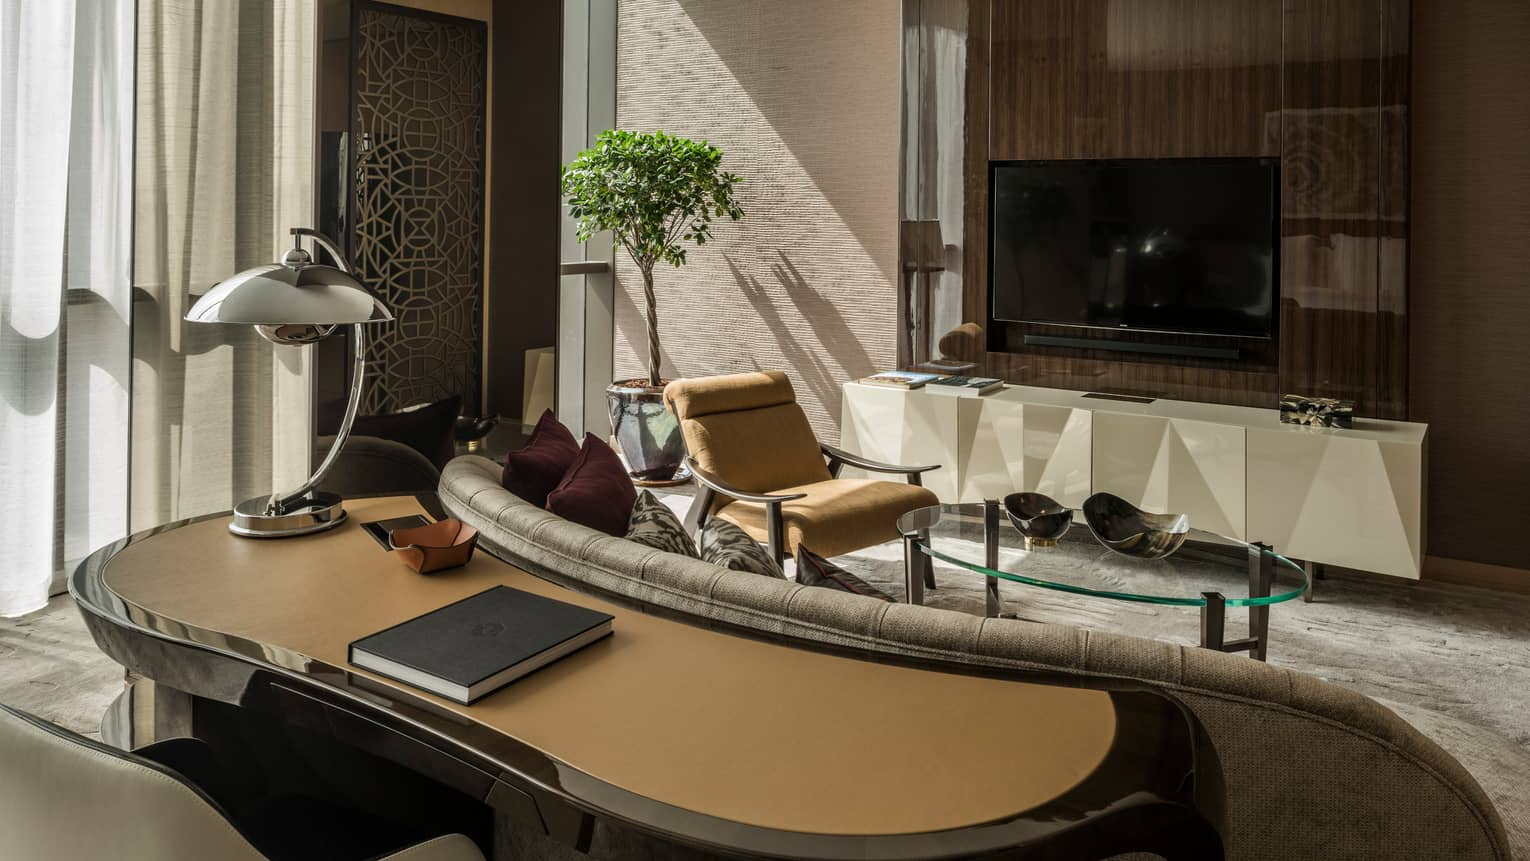 Studio Suite Burj Khalifa View room large curved work desk, lamp behind sofa, glass coffee table, armchair